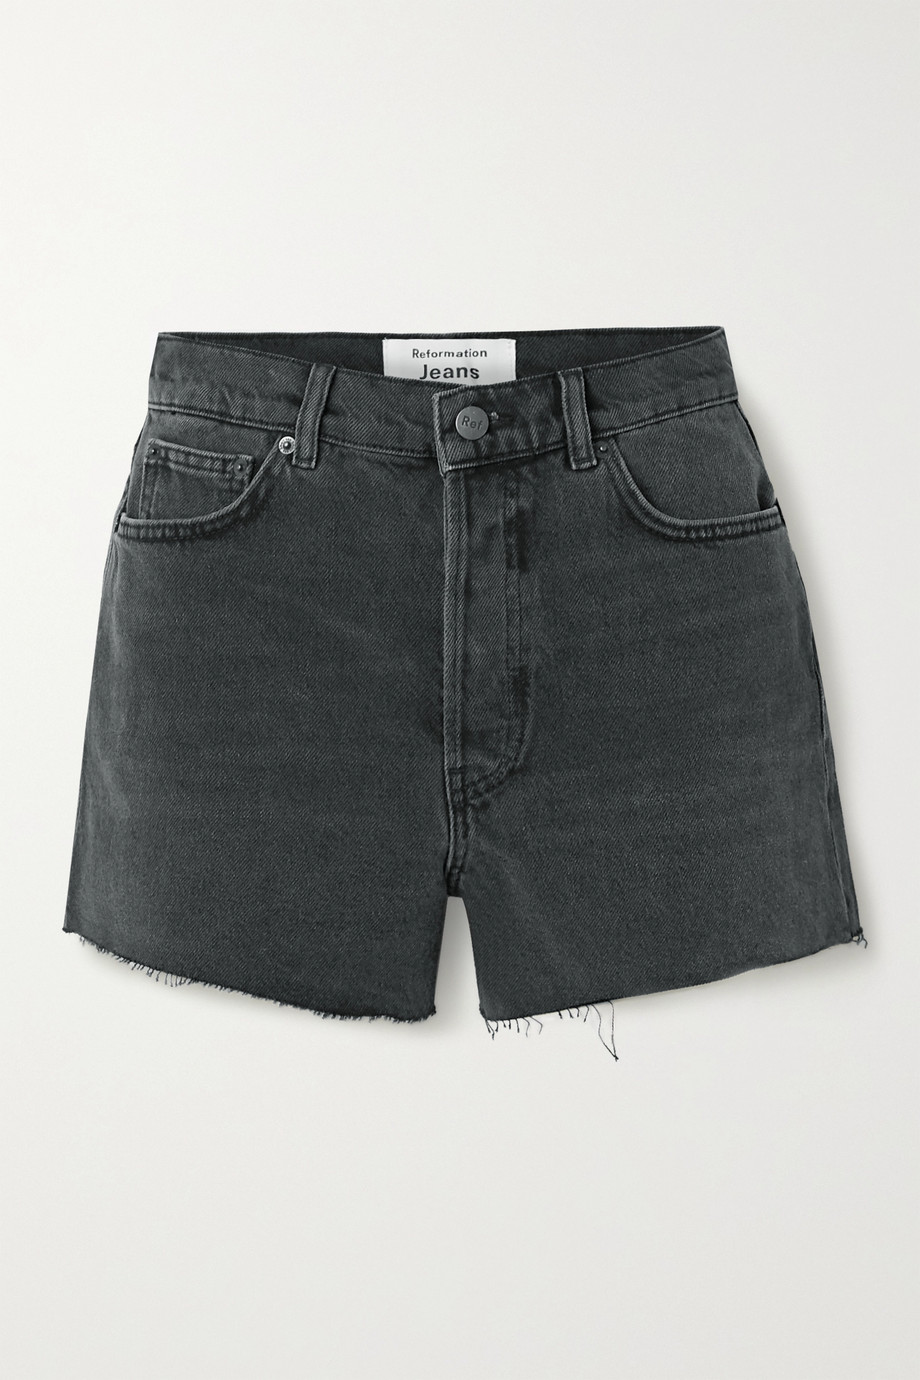 Reformation Dixie frayed denim shorts